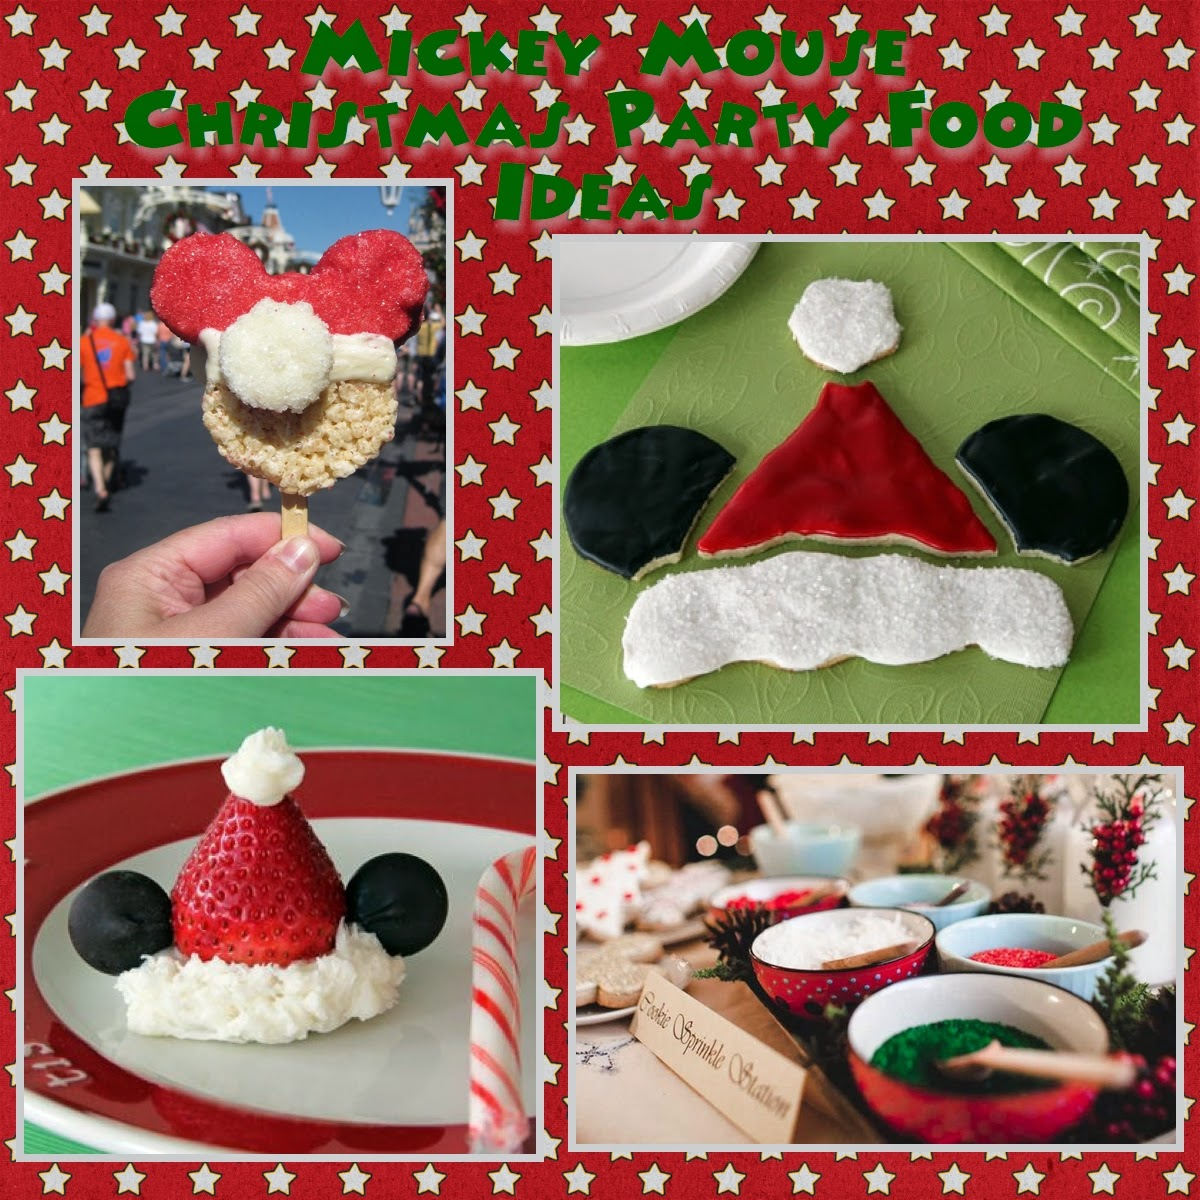 Mickey Mouse Christmas Party Ideas & Mickey Mouse Party Food Activity Ideas - Food Ideas For Mickey Party